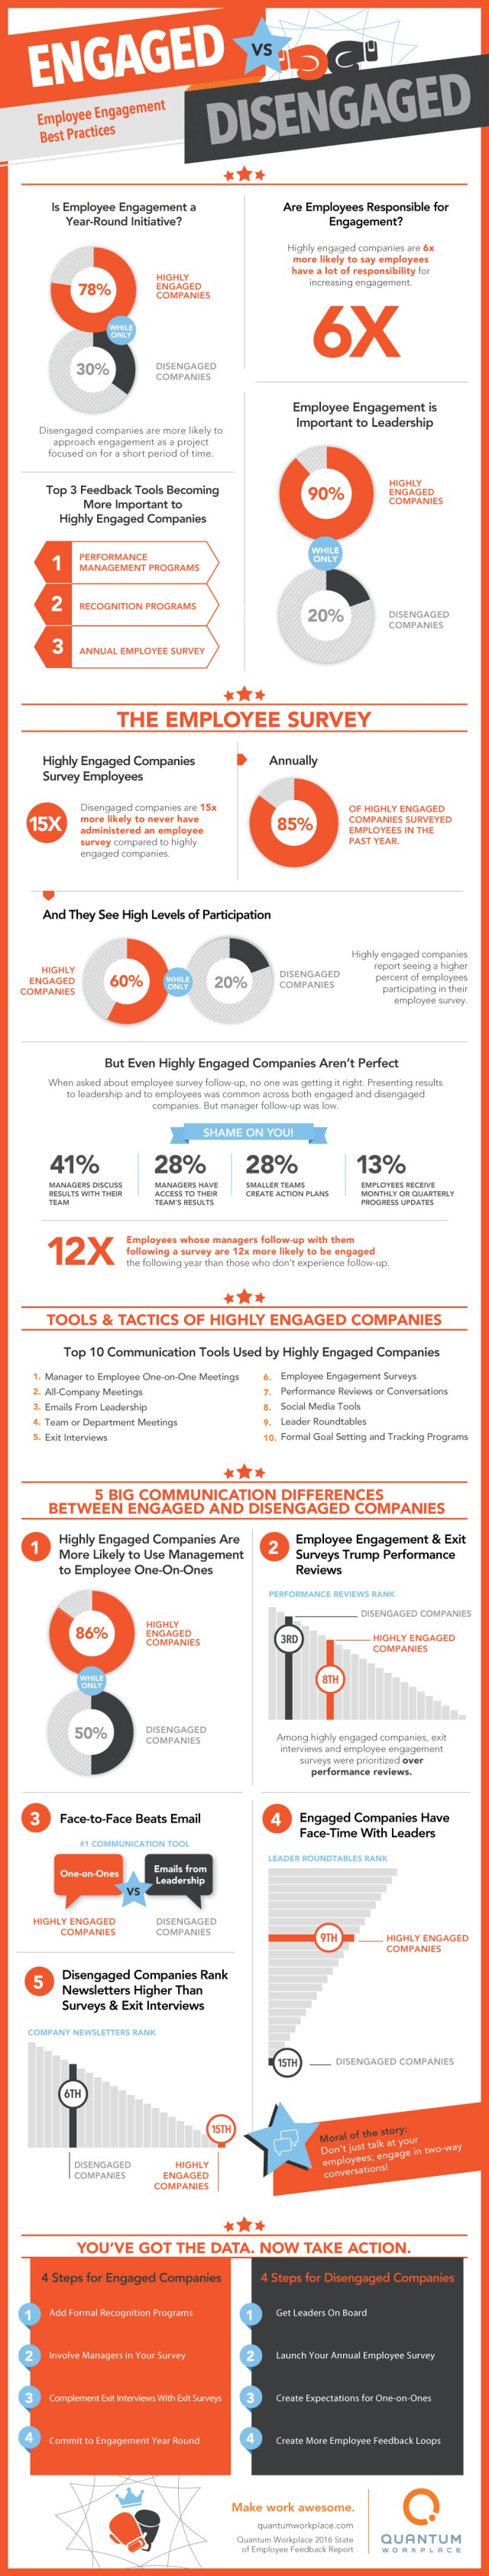 Employee Engagement Practices